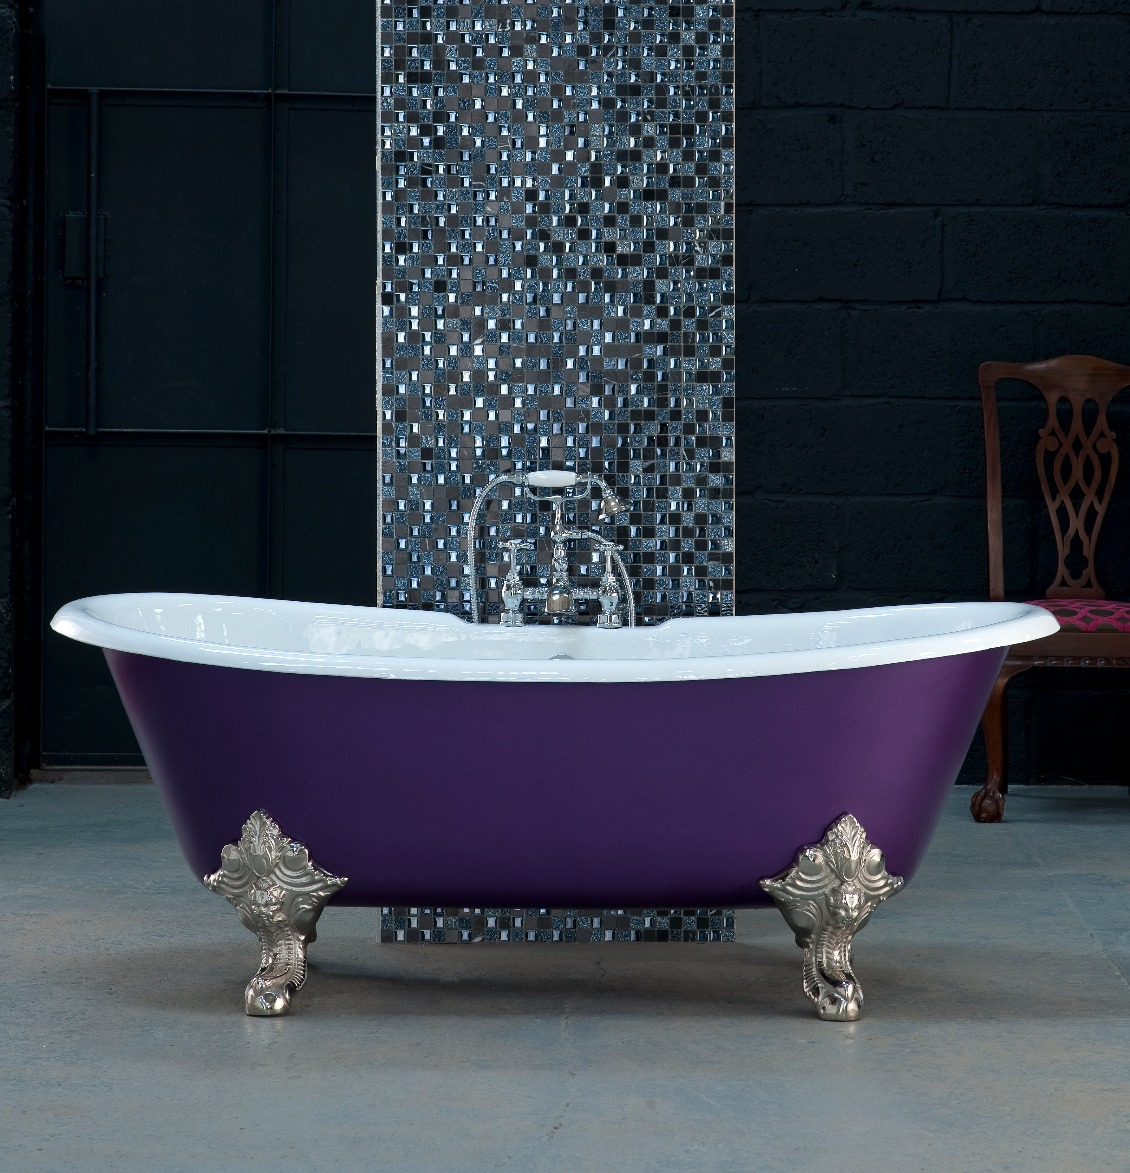 Arroll The Milan Cast Iron Bath now available at Foundry Cast Iron!